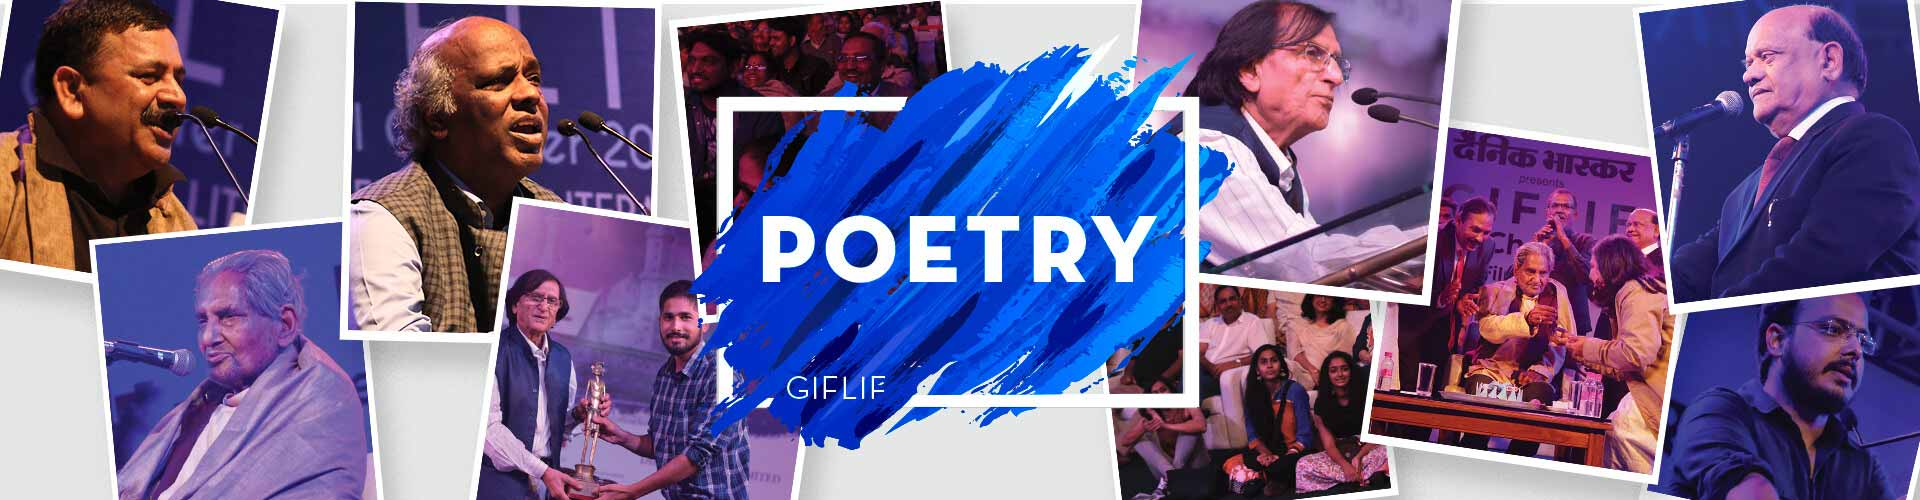 4-GIFLIF-Collage-(Poetry)